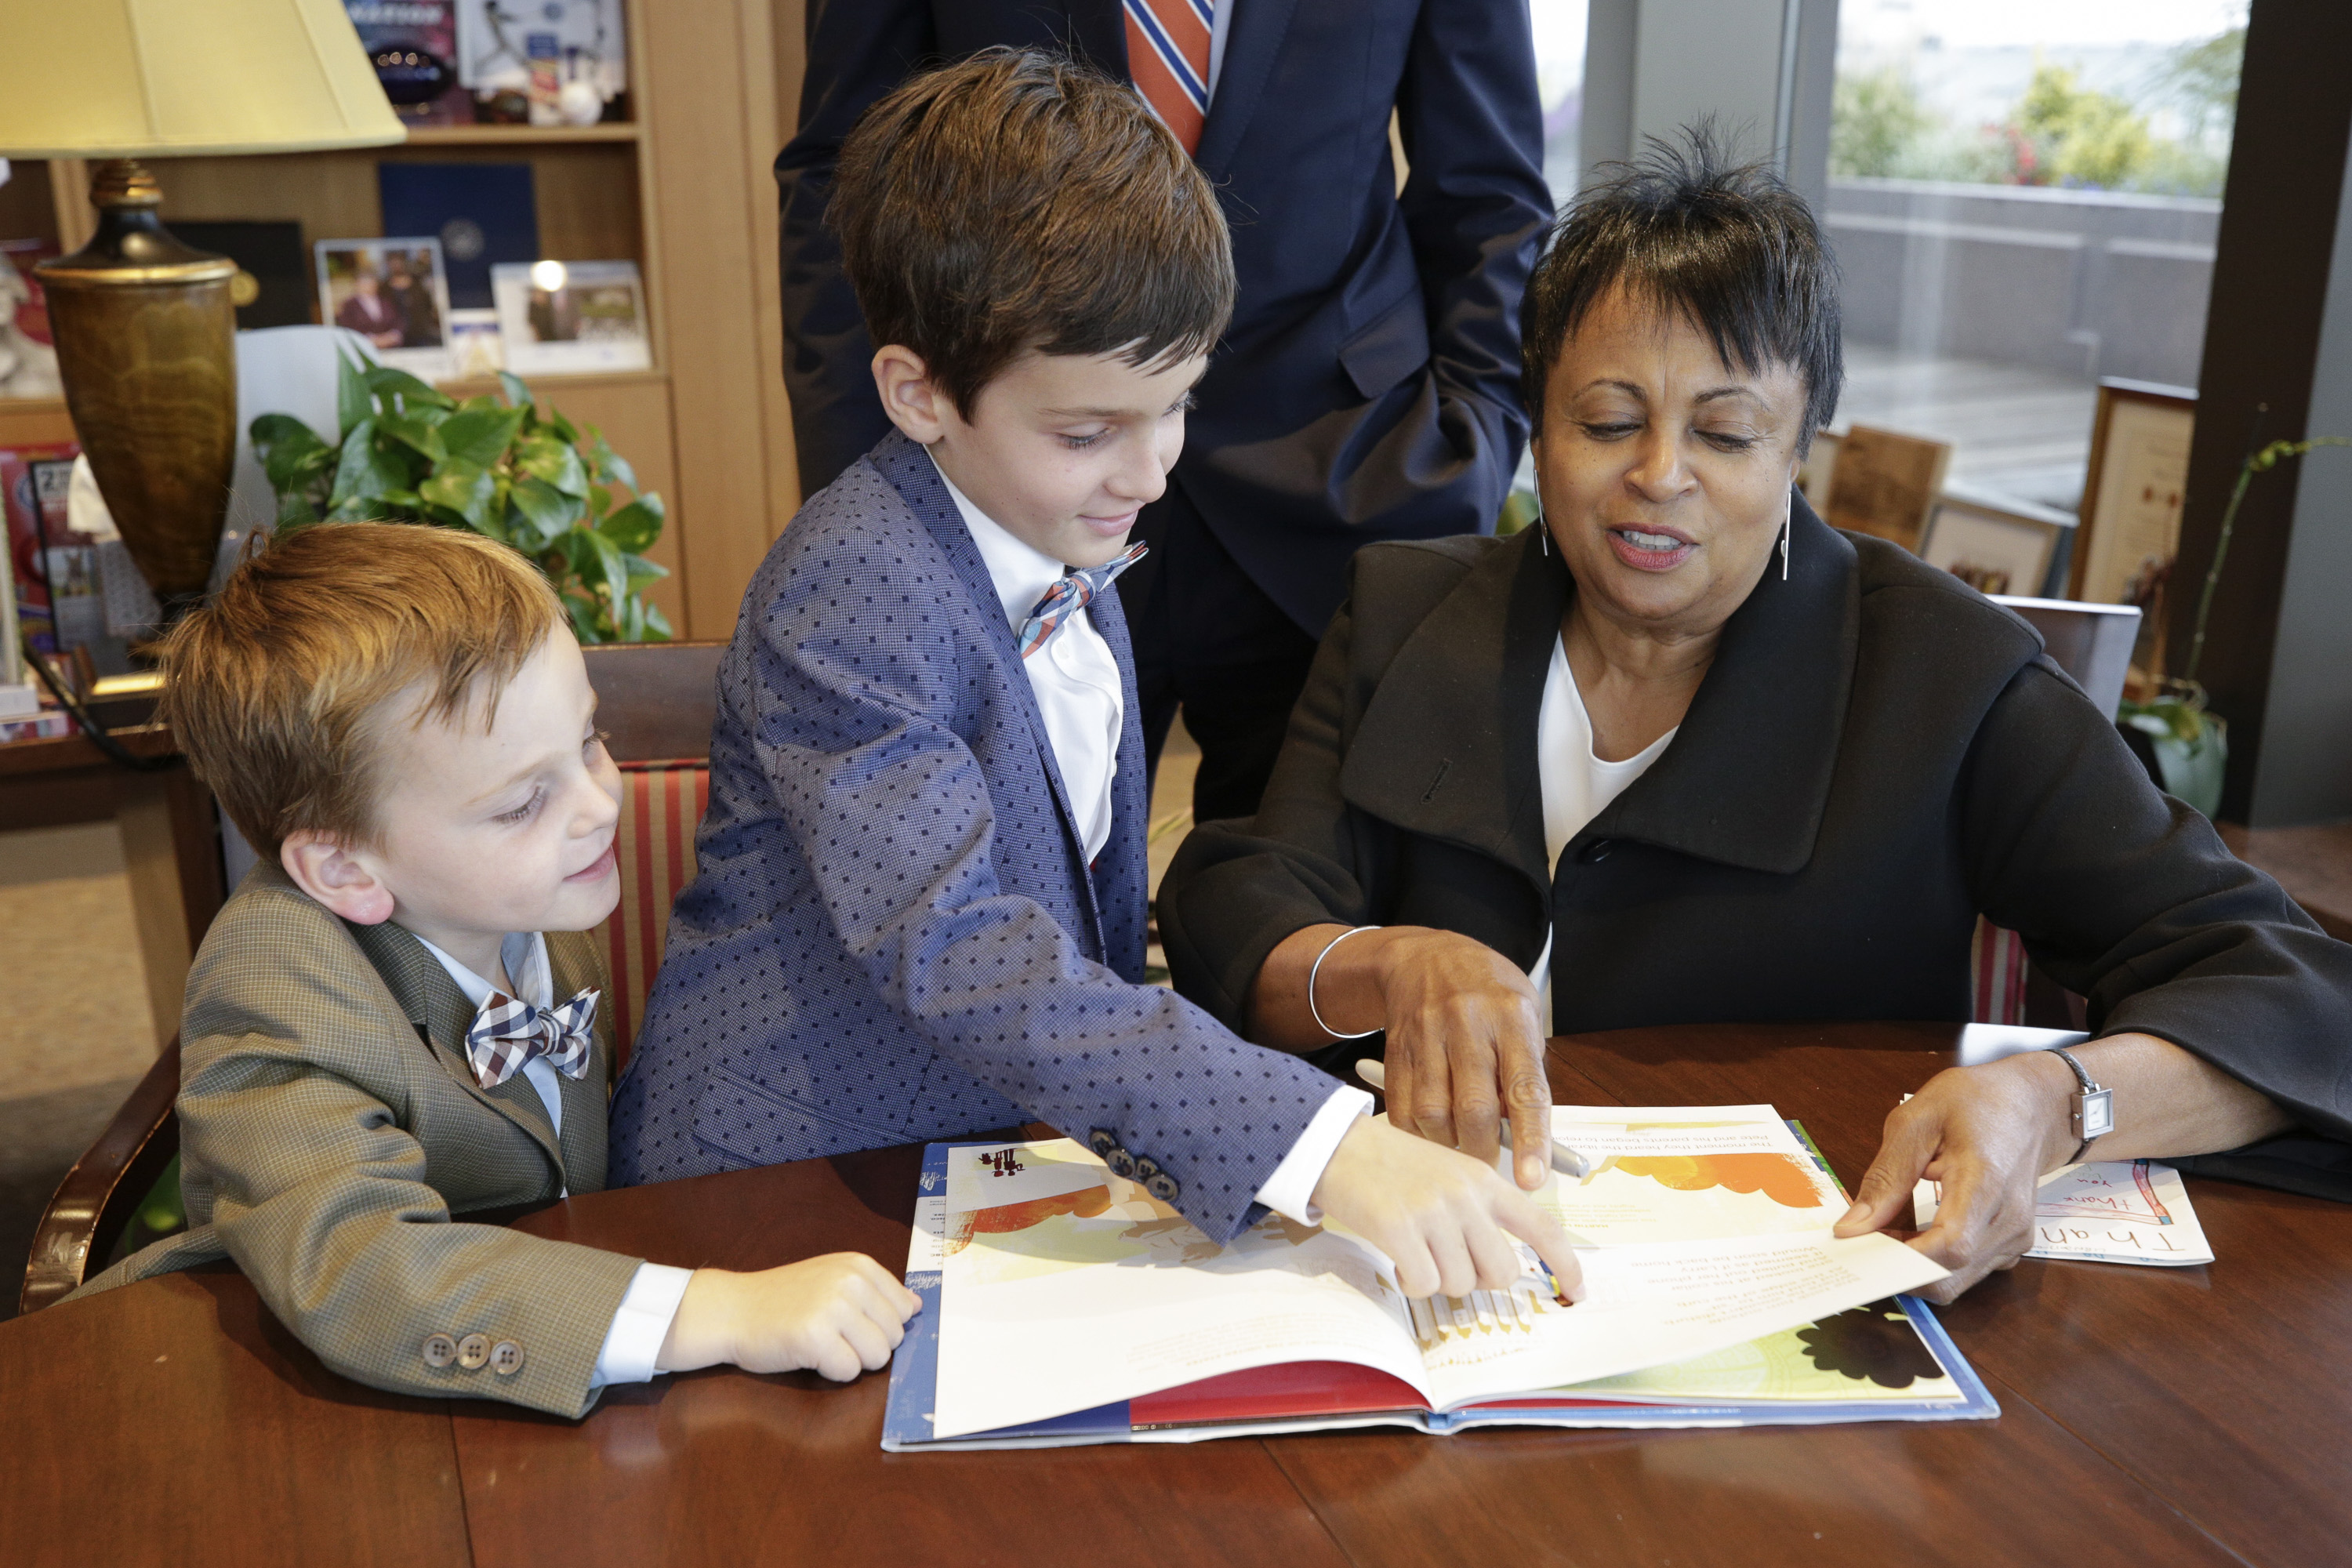 Adam Coffey, 8, from San Clemente, California, meets with Librarian of Congress Carla Hayden, October 11, 2017. Photo by Shawn Miller.